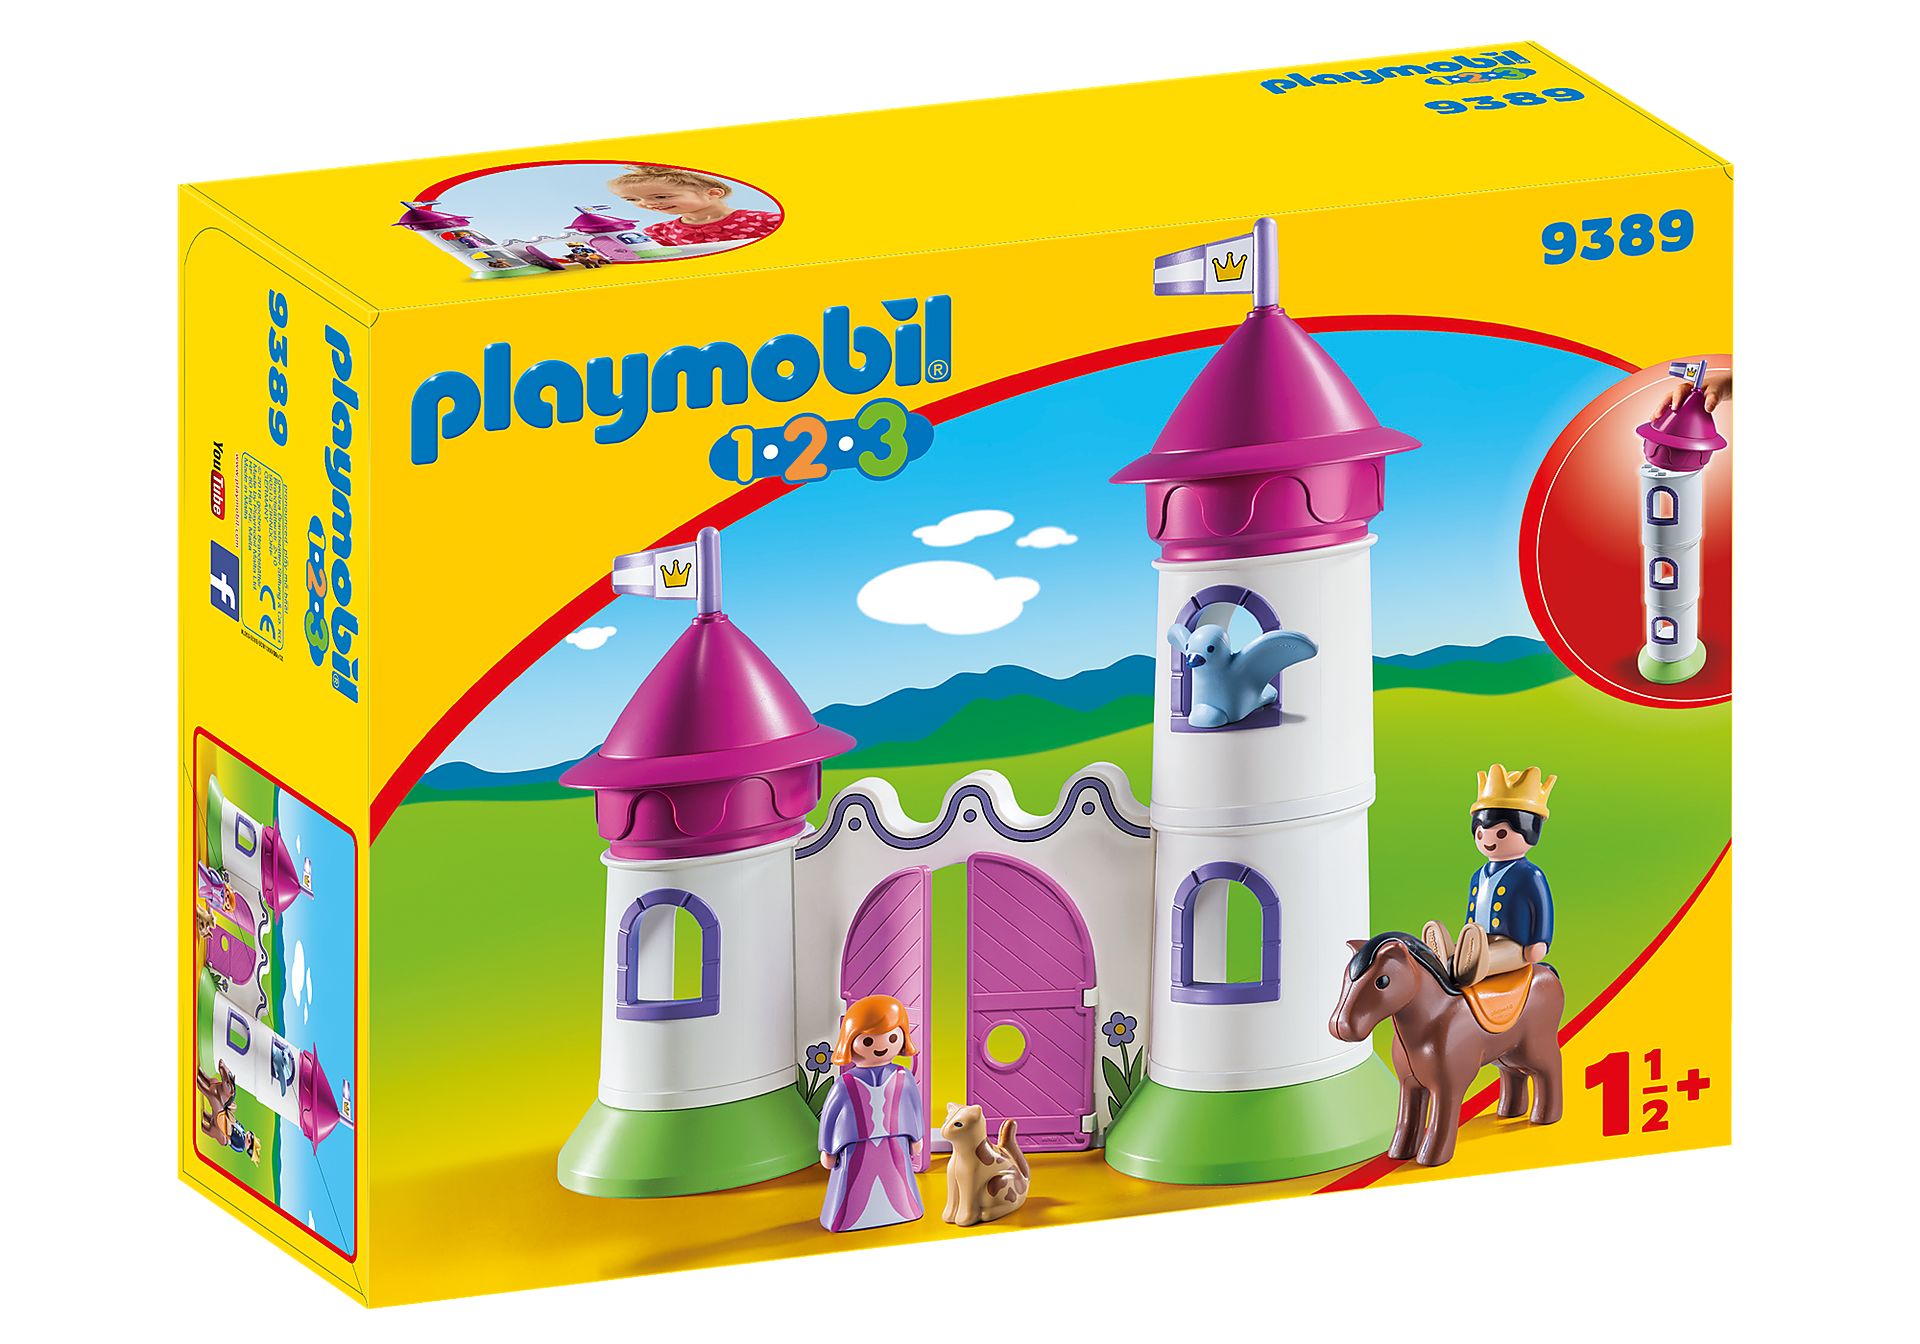 http://media.playmobil.com/i/playmobil/9389_product_box_front/Château de princesse avec tours empilables